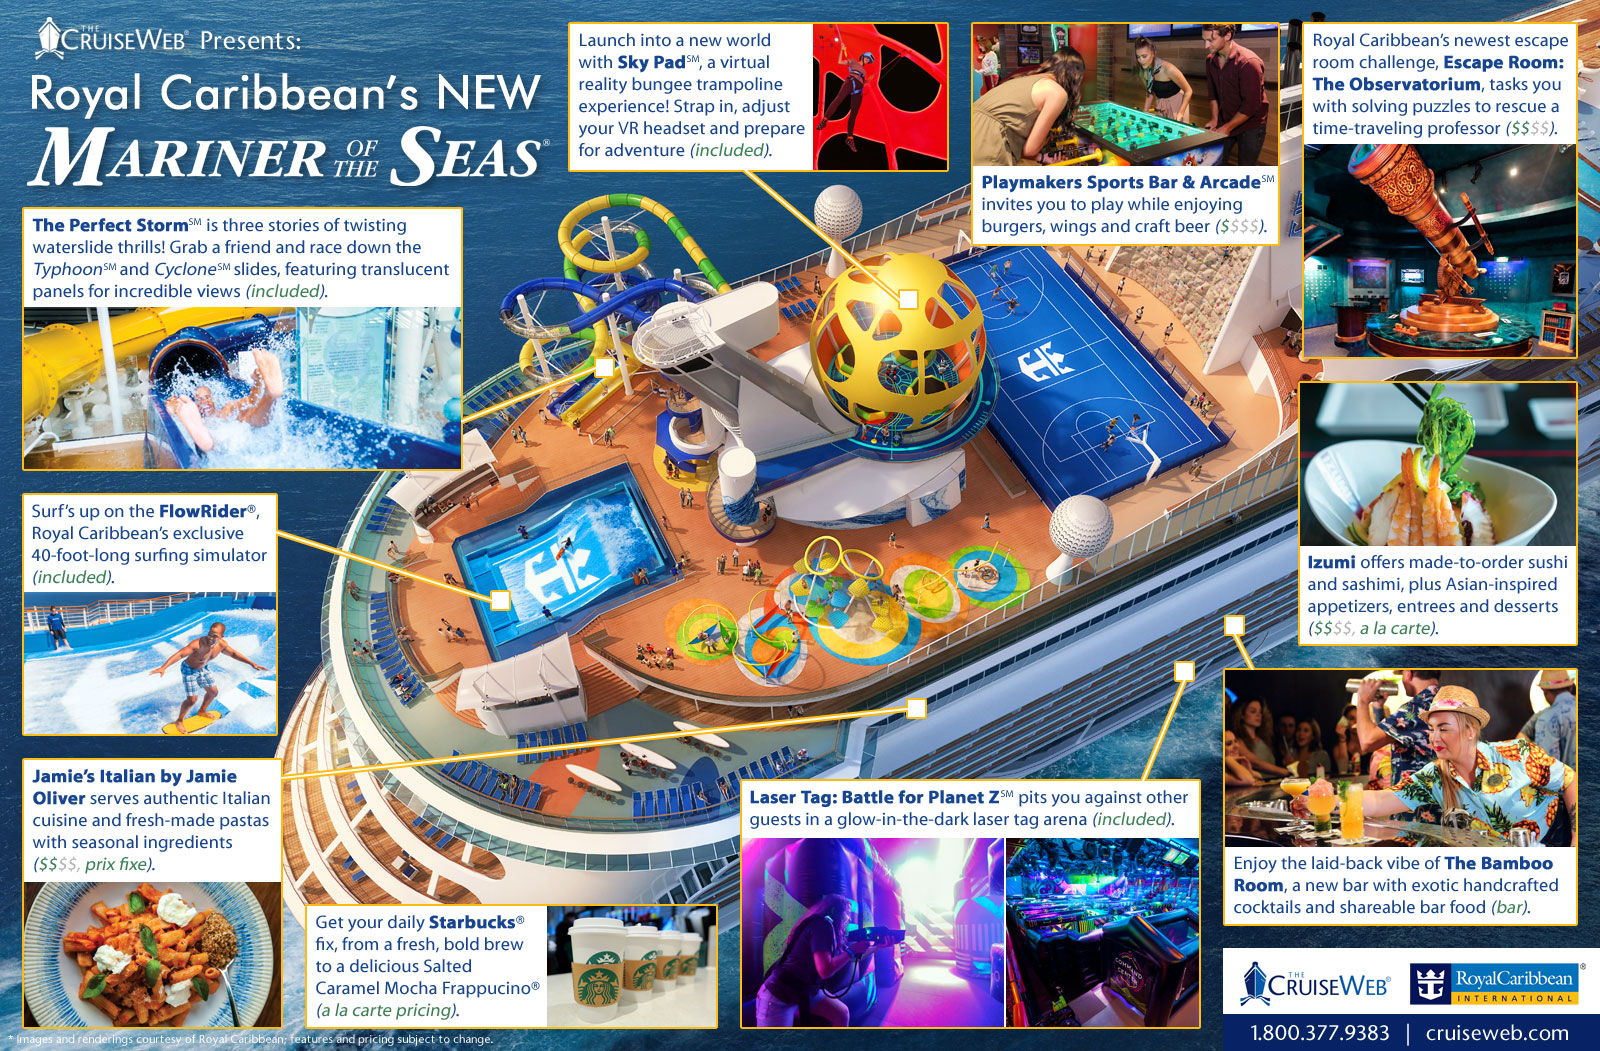 Royal Caribbean's New Mariner of the Seas: An Infographic